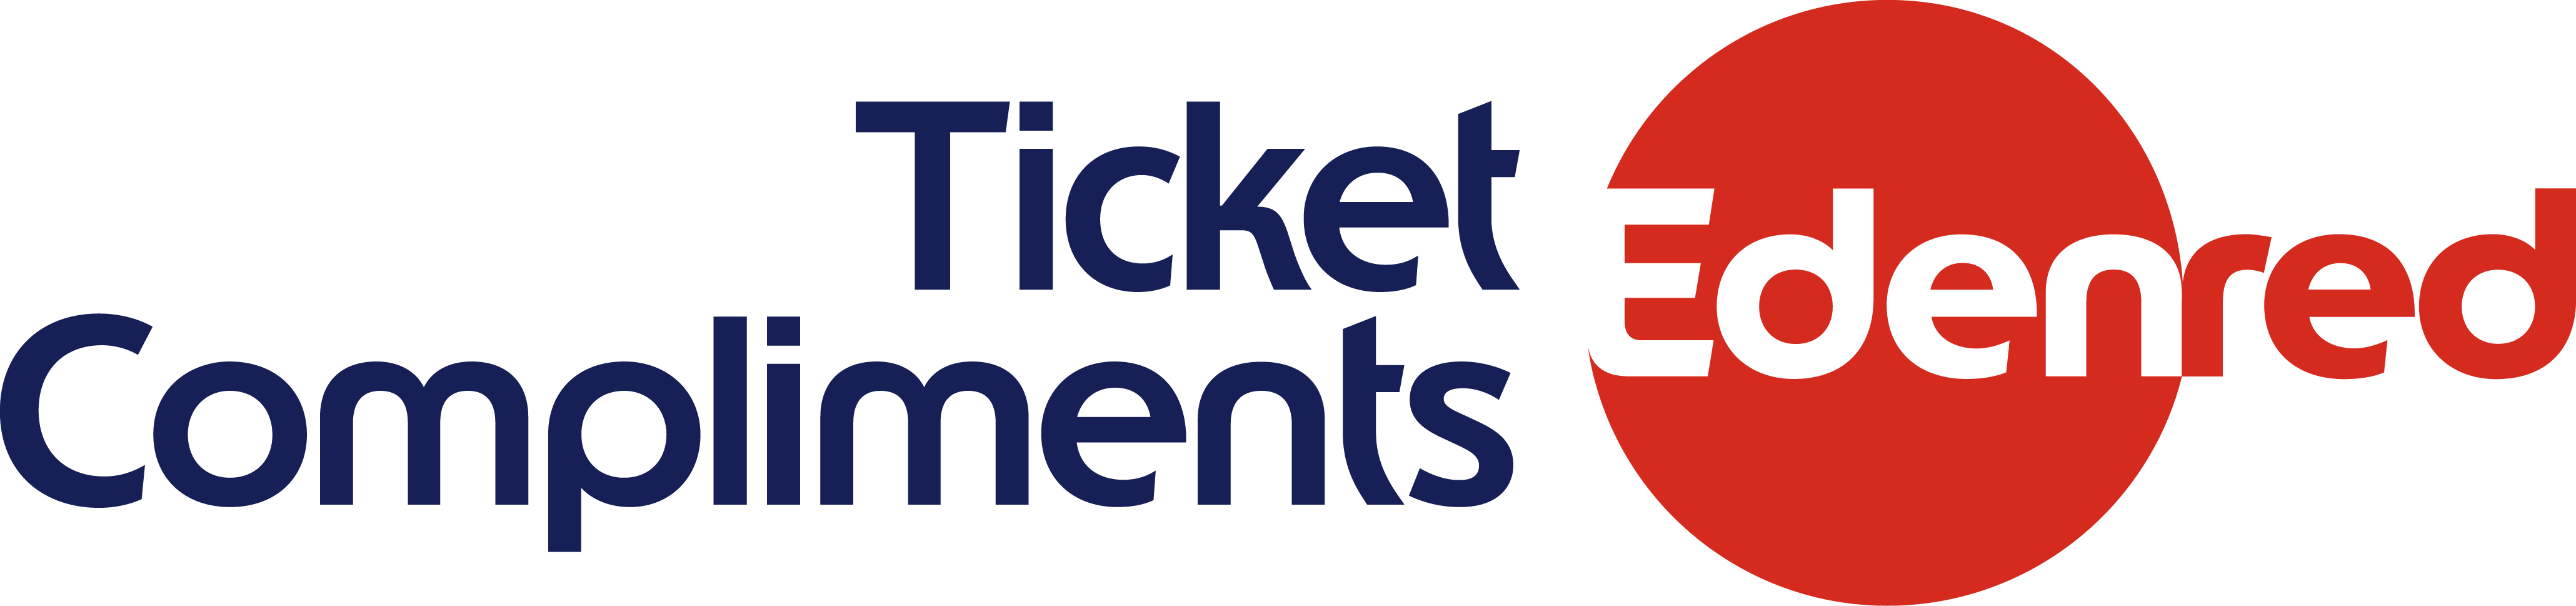 Buoni Edenred: Ticket Compliments Selection